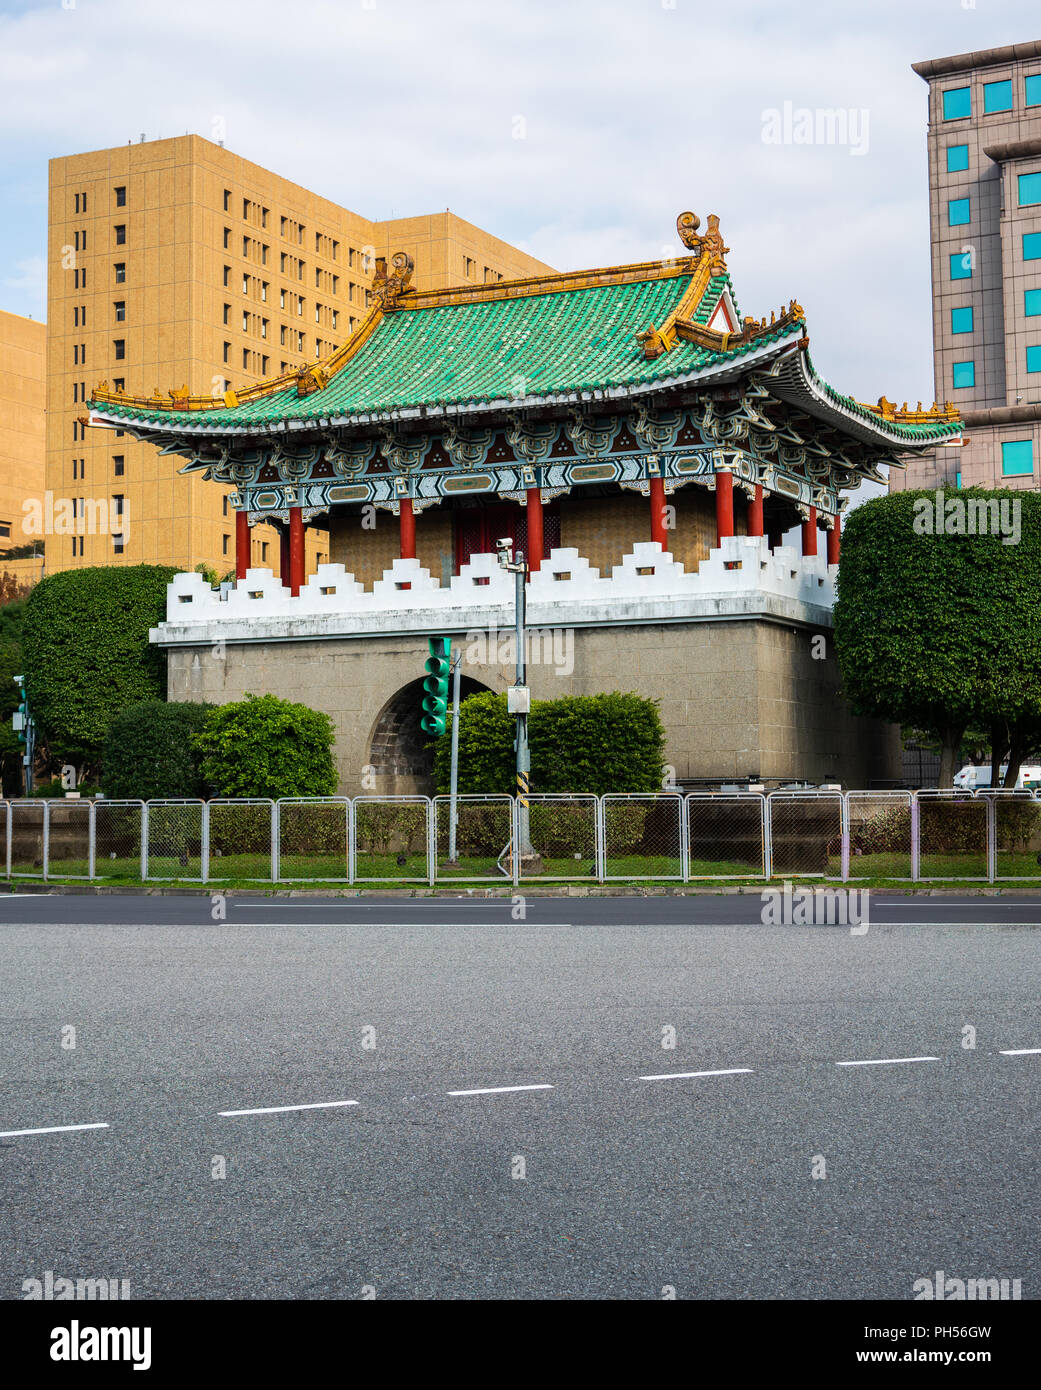 Vertical view of Taipei East Gate former part of the walls of Taipeh in Taiwan - Stock Image